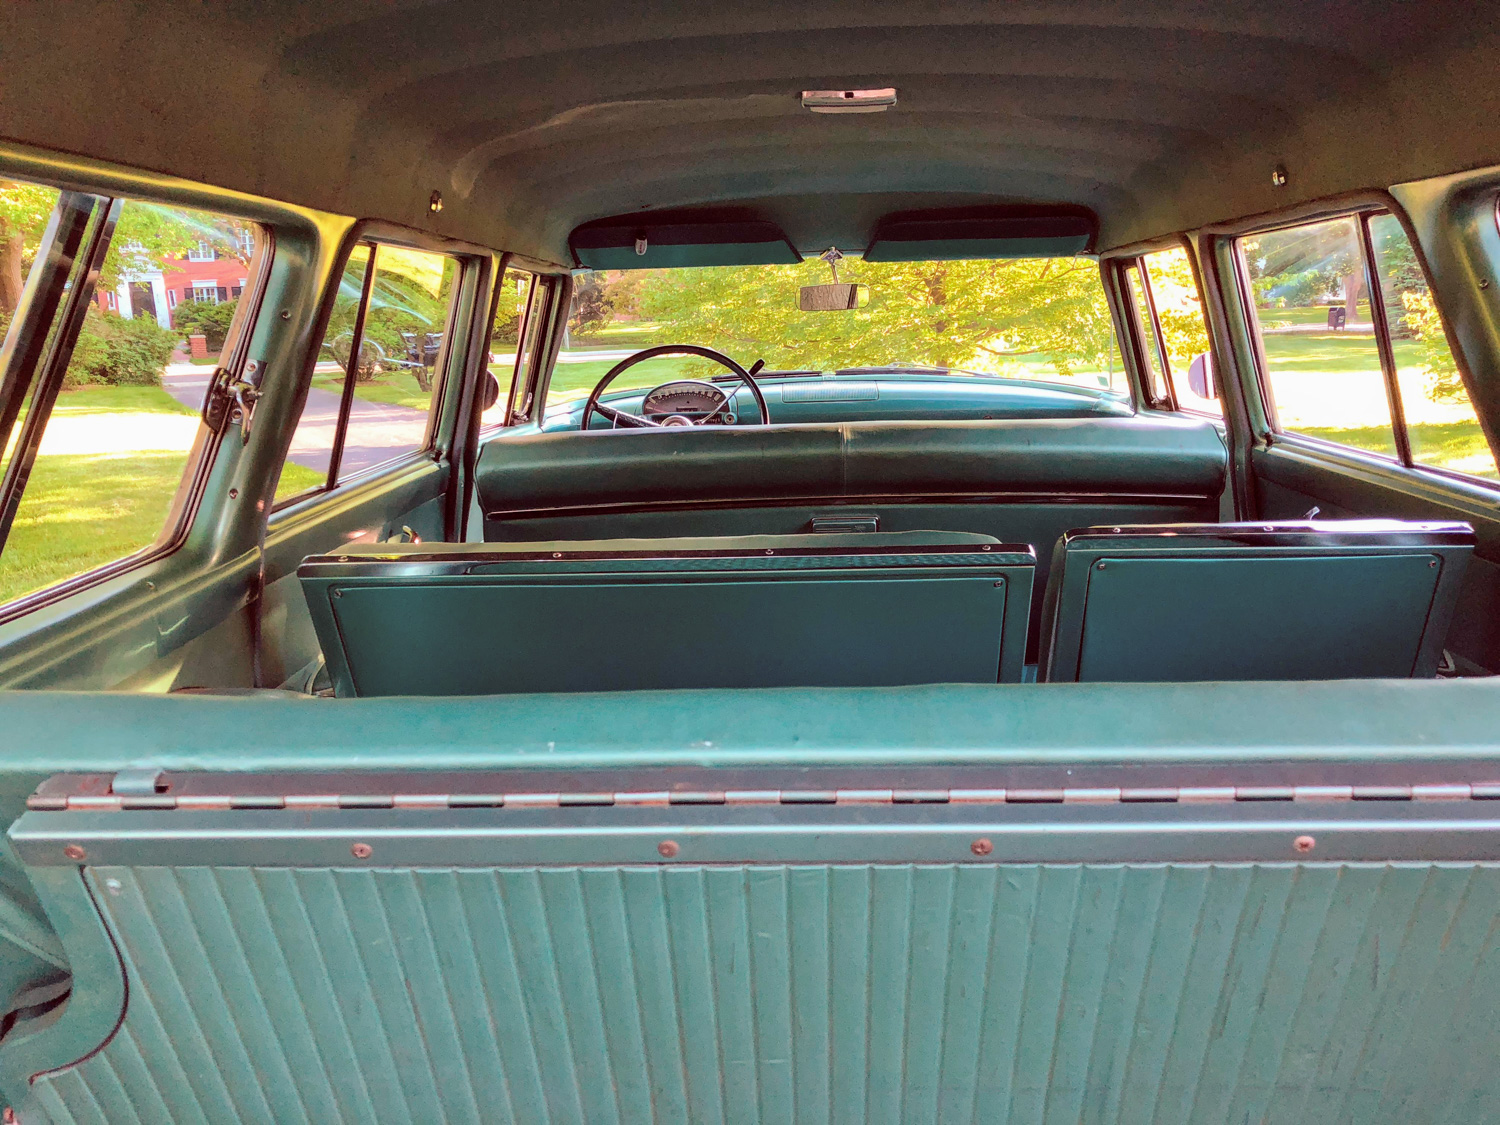 1955 Ford Country Squire Wagon interior rear